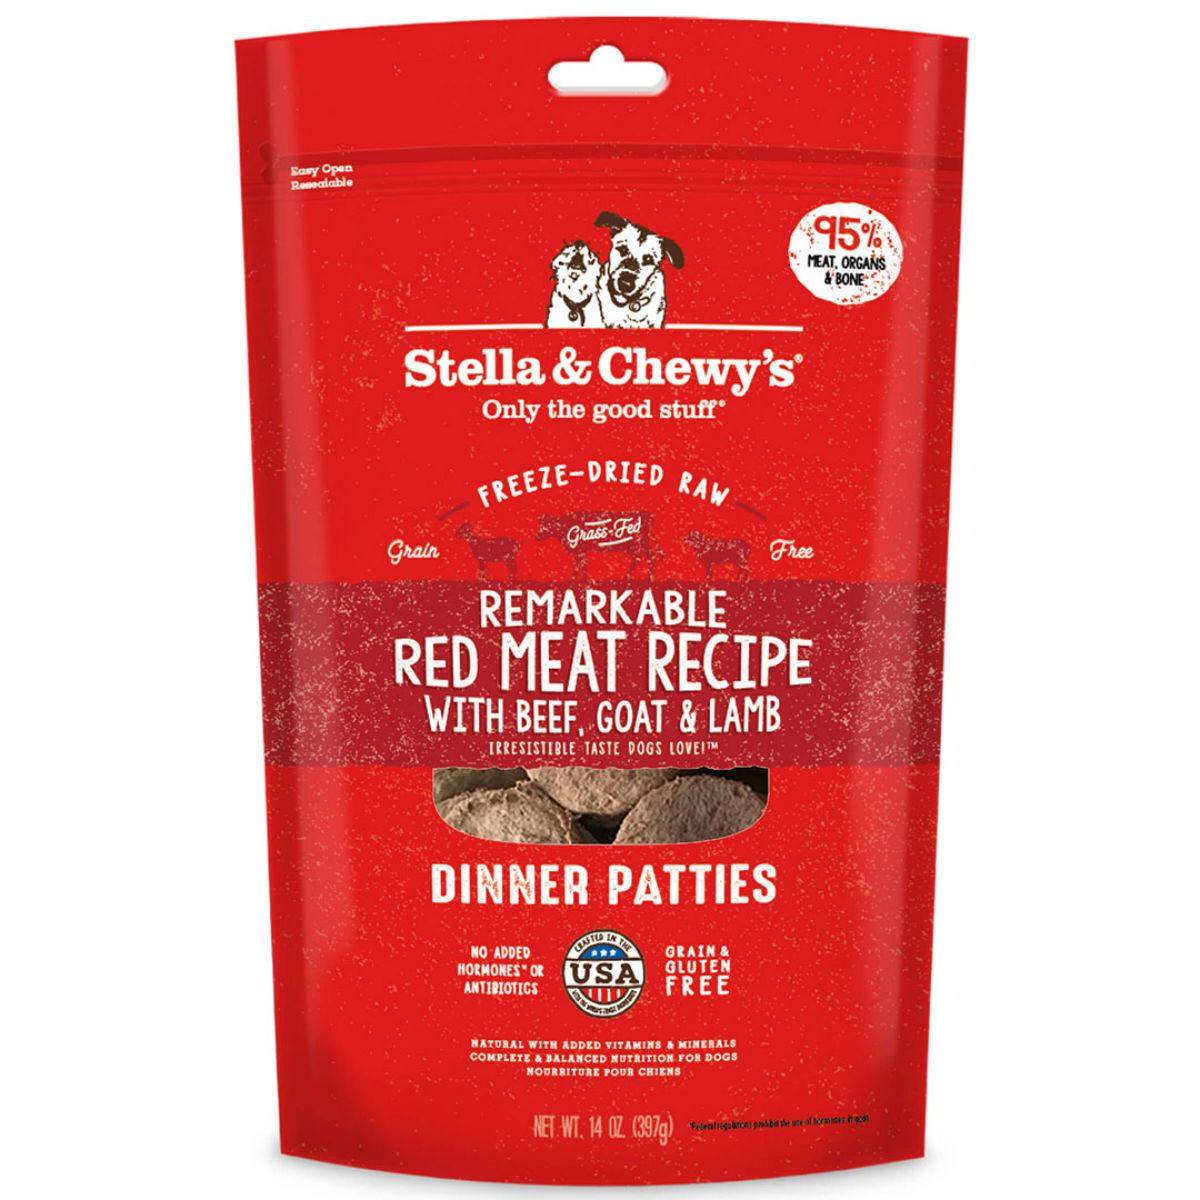 Stella & Chewy's Remarkable Red Meat Recipe Dinner Patties Dog Treat - Freeze Dried